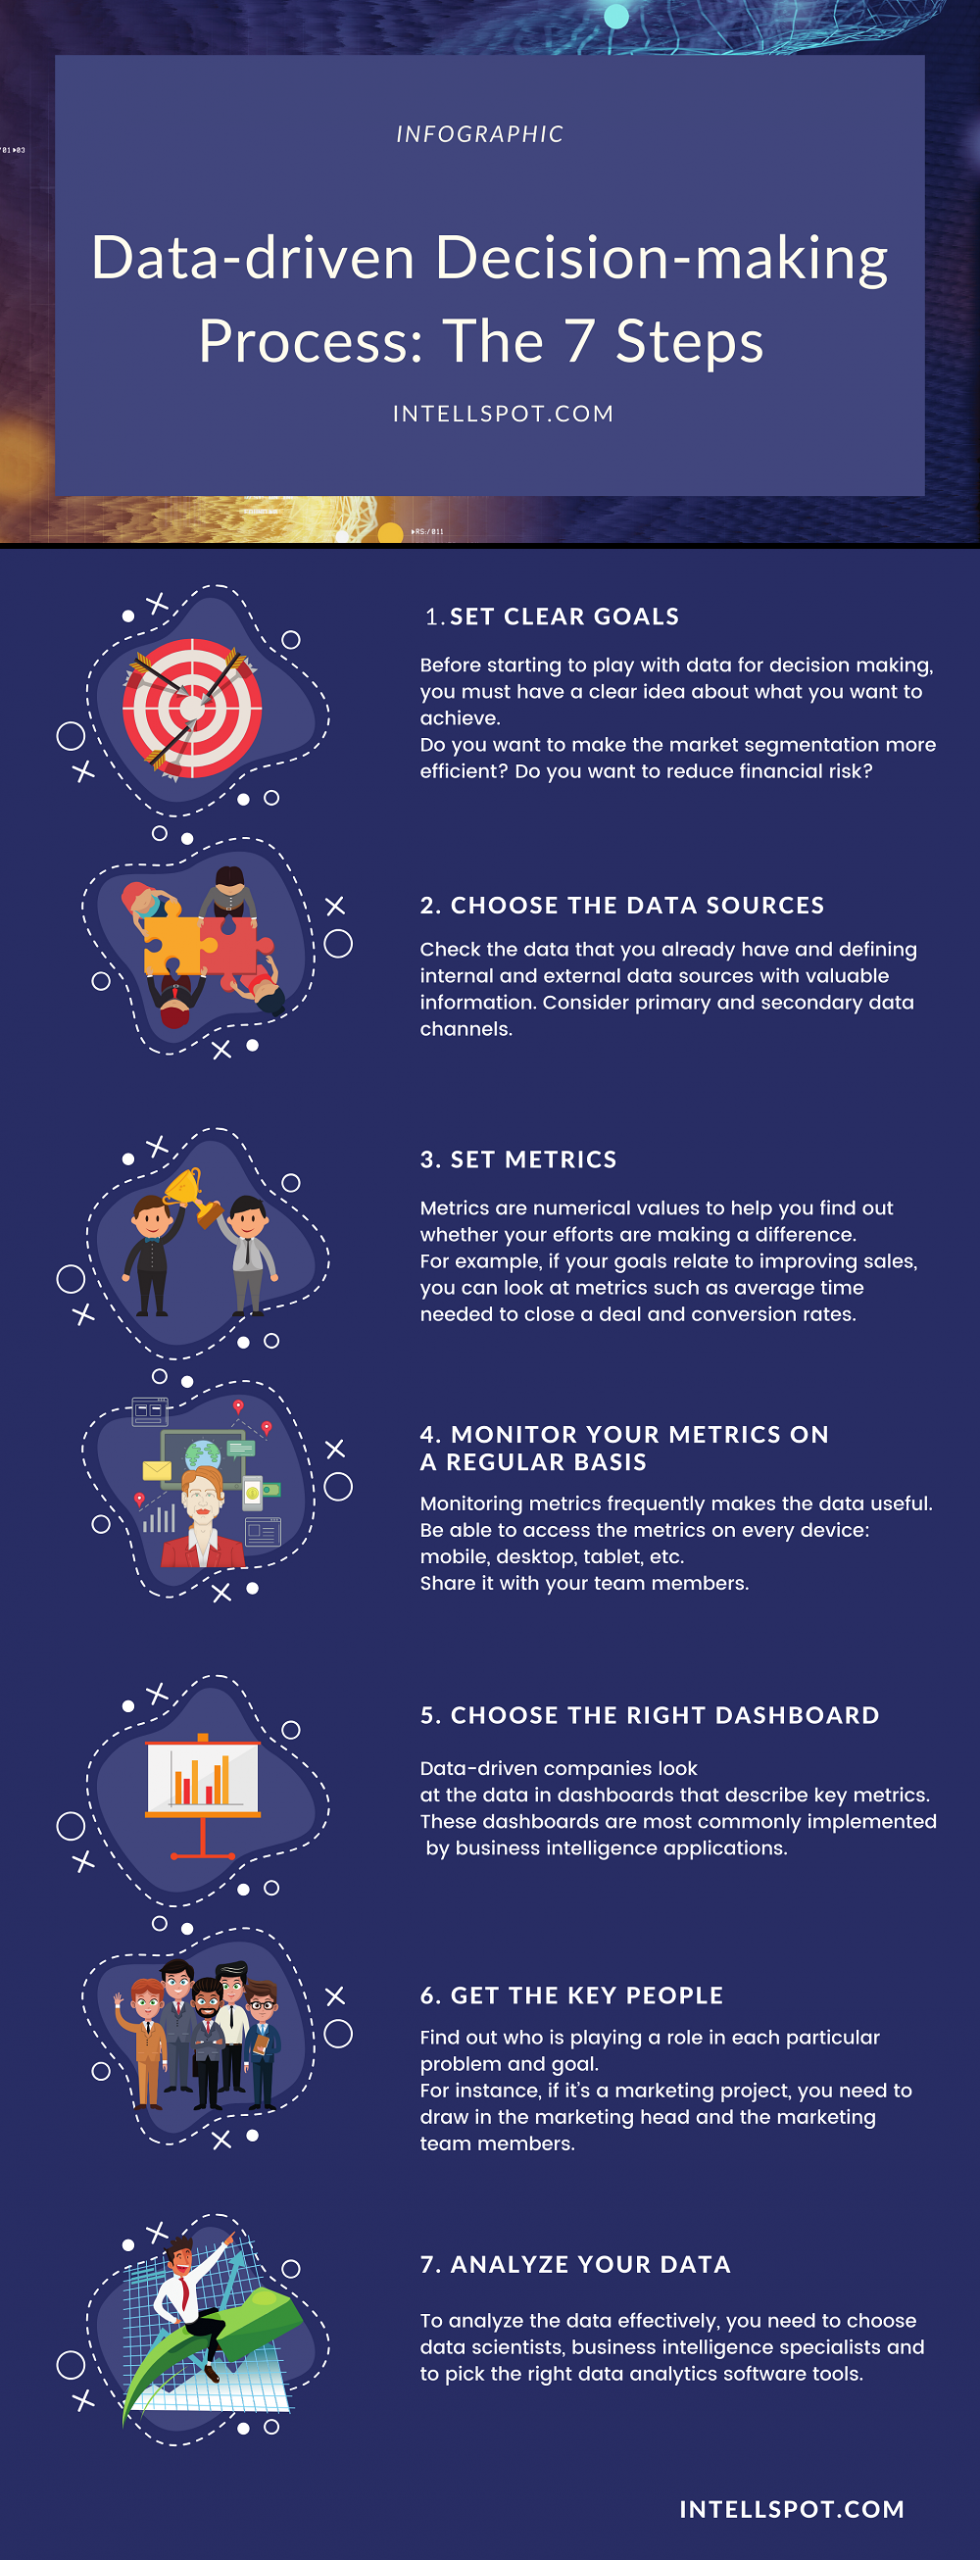 Data Driven Decision Making Process - Steps - Infographic